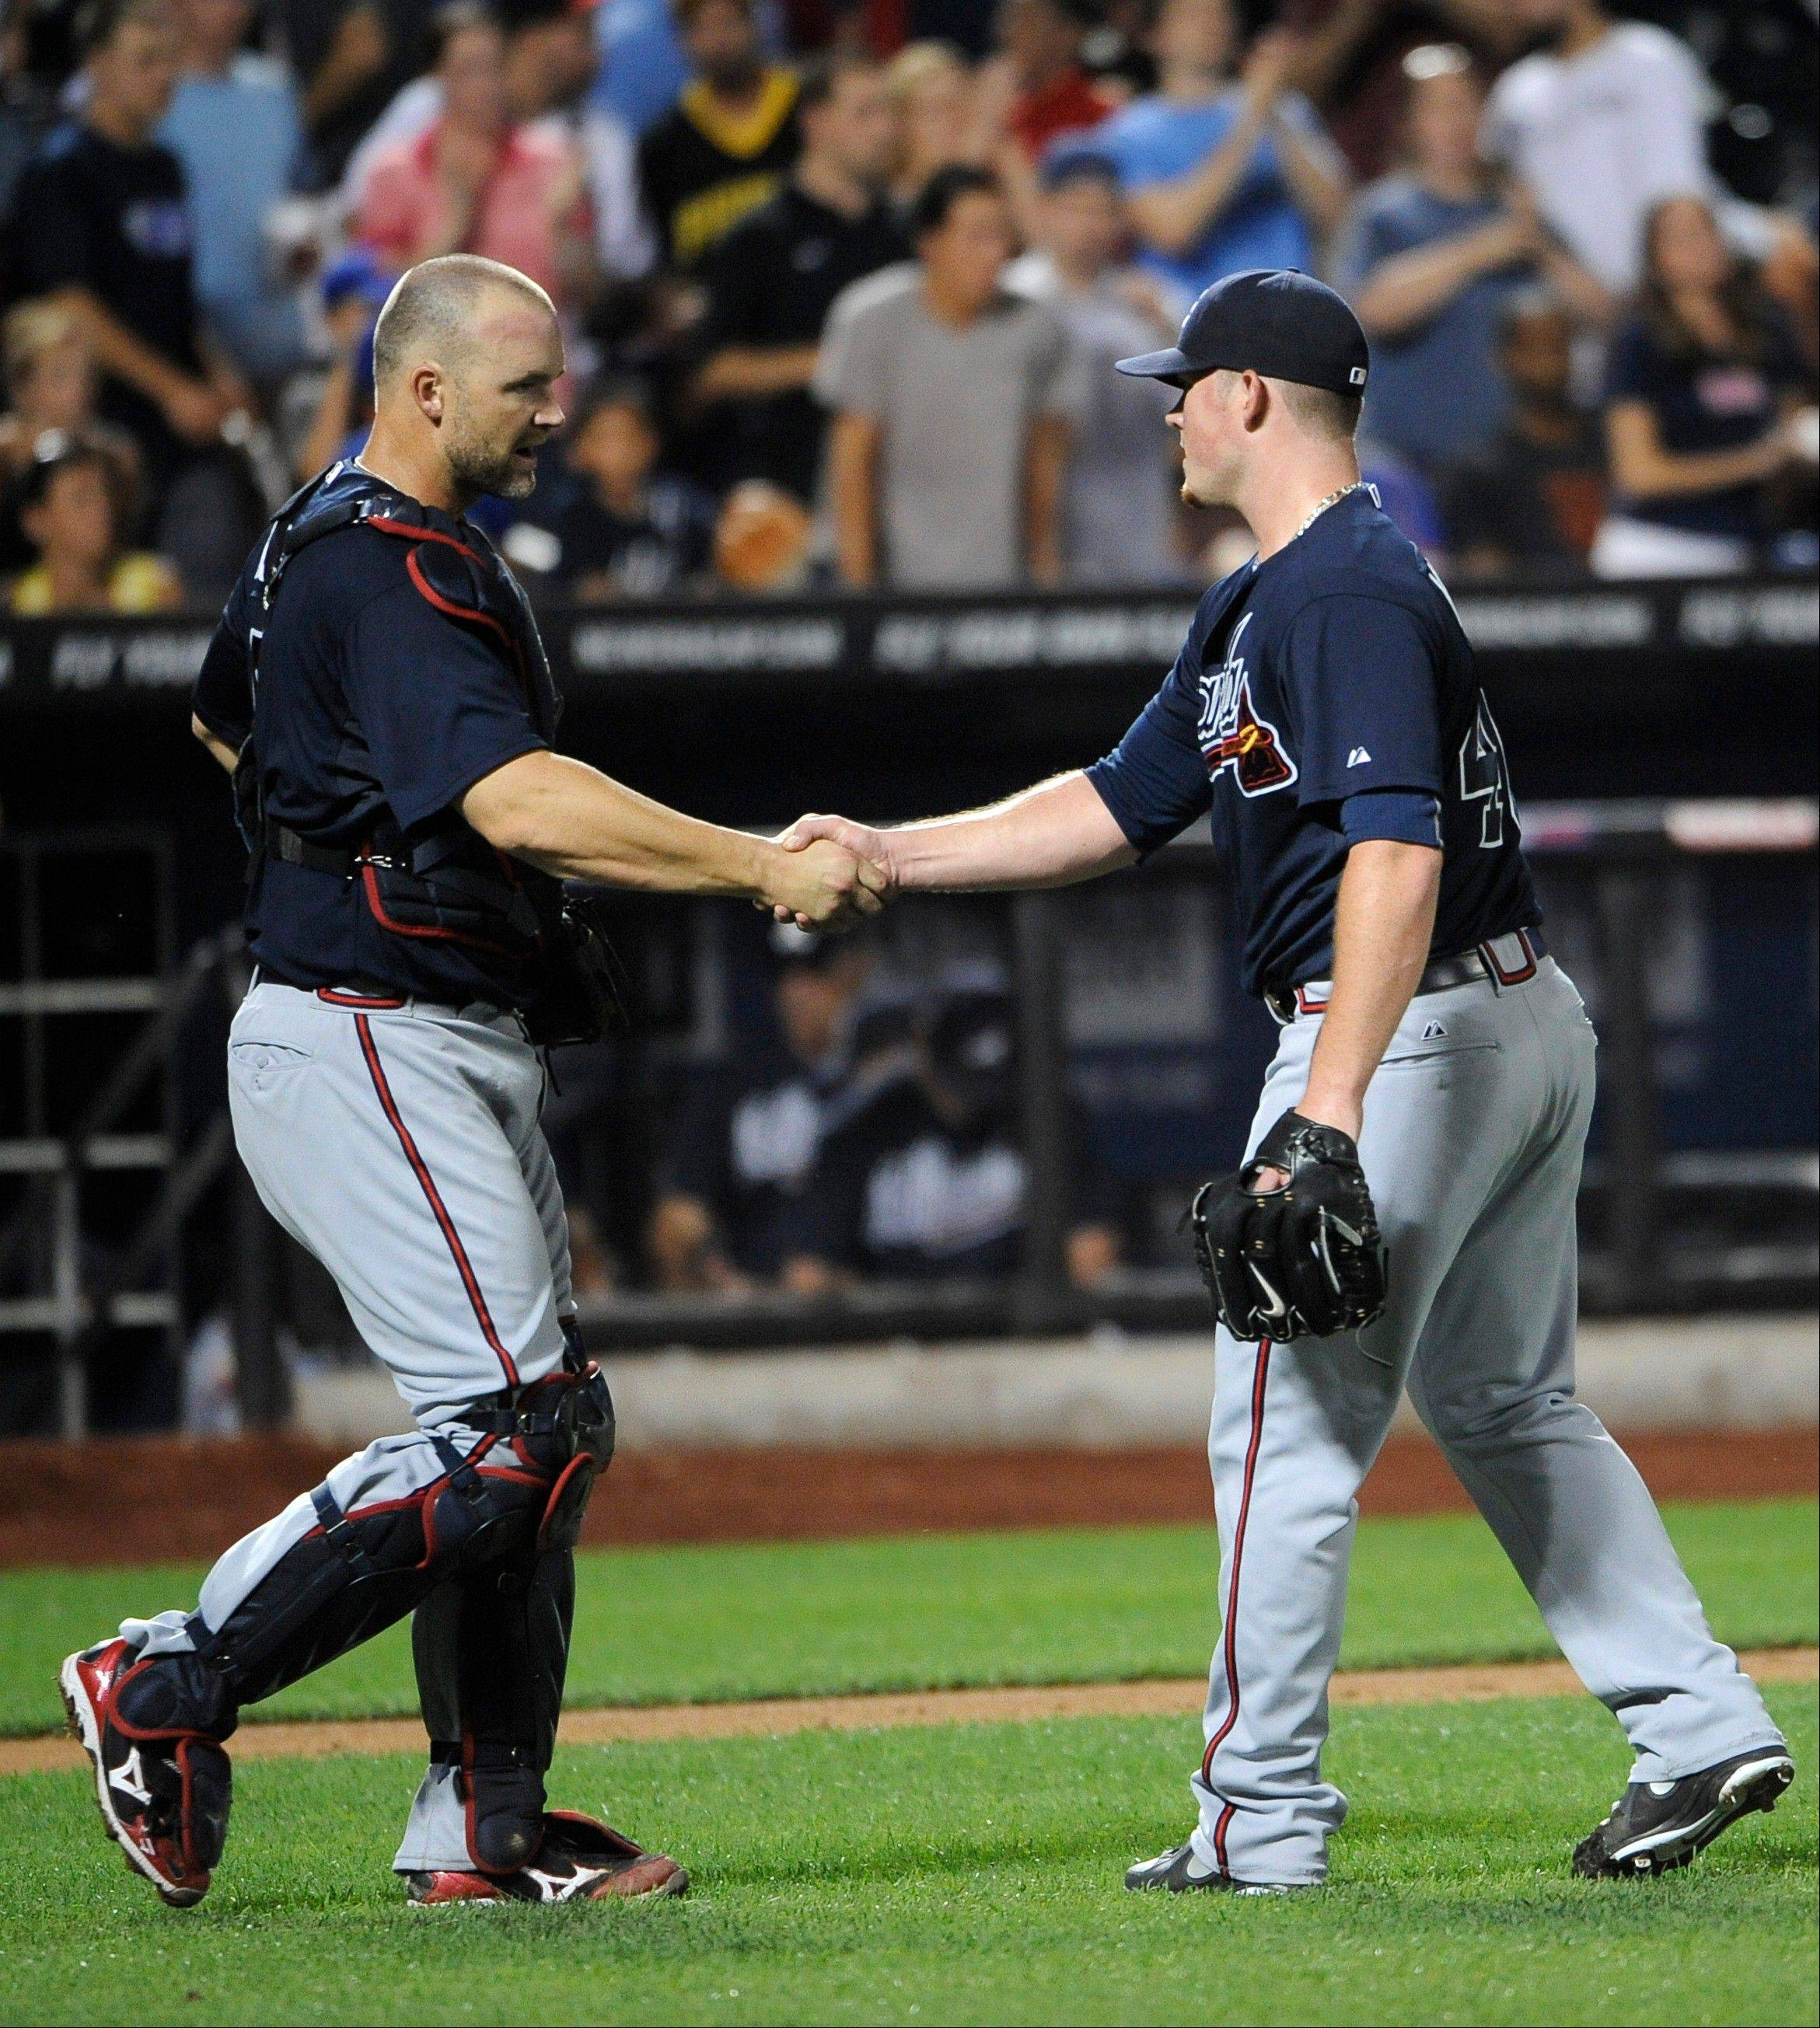 Braves catcher David Ross shakes hands with relief pitcher Craig Kimbrel after Atlanta beat the Mets 3-0 Friday in New York.